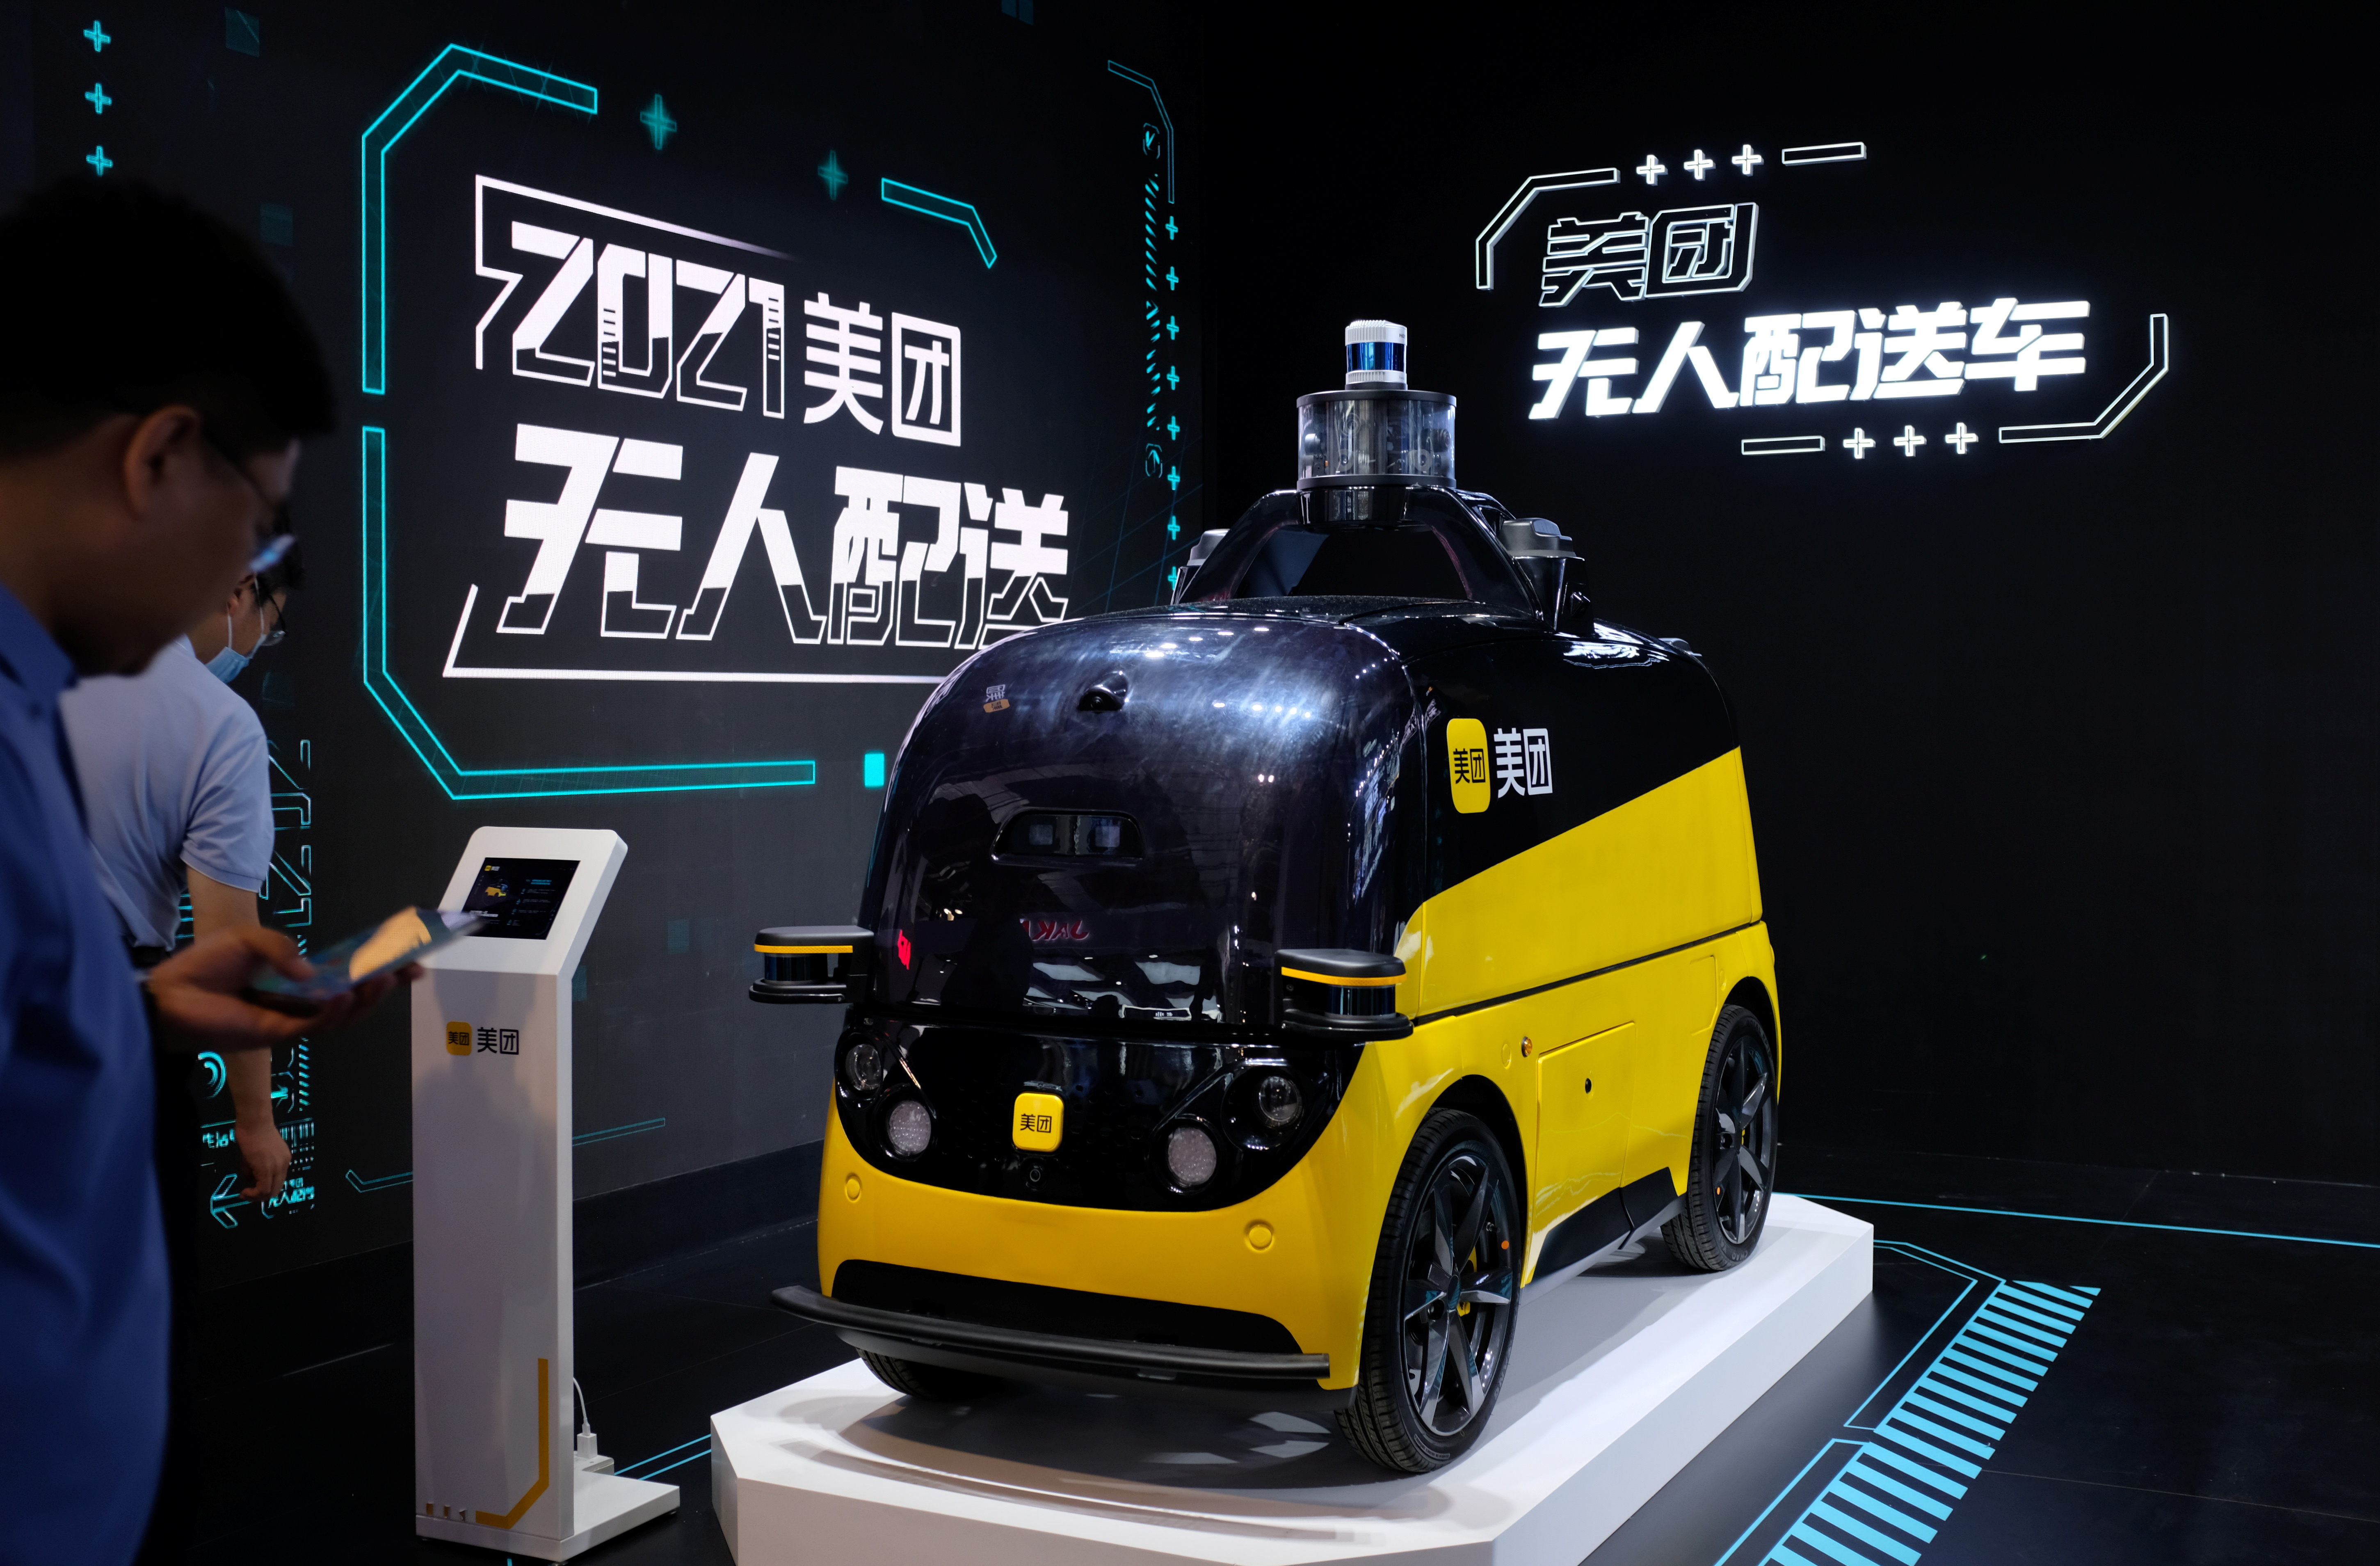 An autonomous delivery vehicle by Meituan is displayed at the World Artificial Intelligence Conference (WAIC) in Shanghai, China July 8, 2021. REUTERS/Yilei Sun